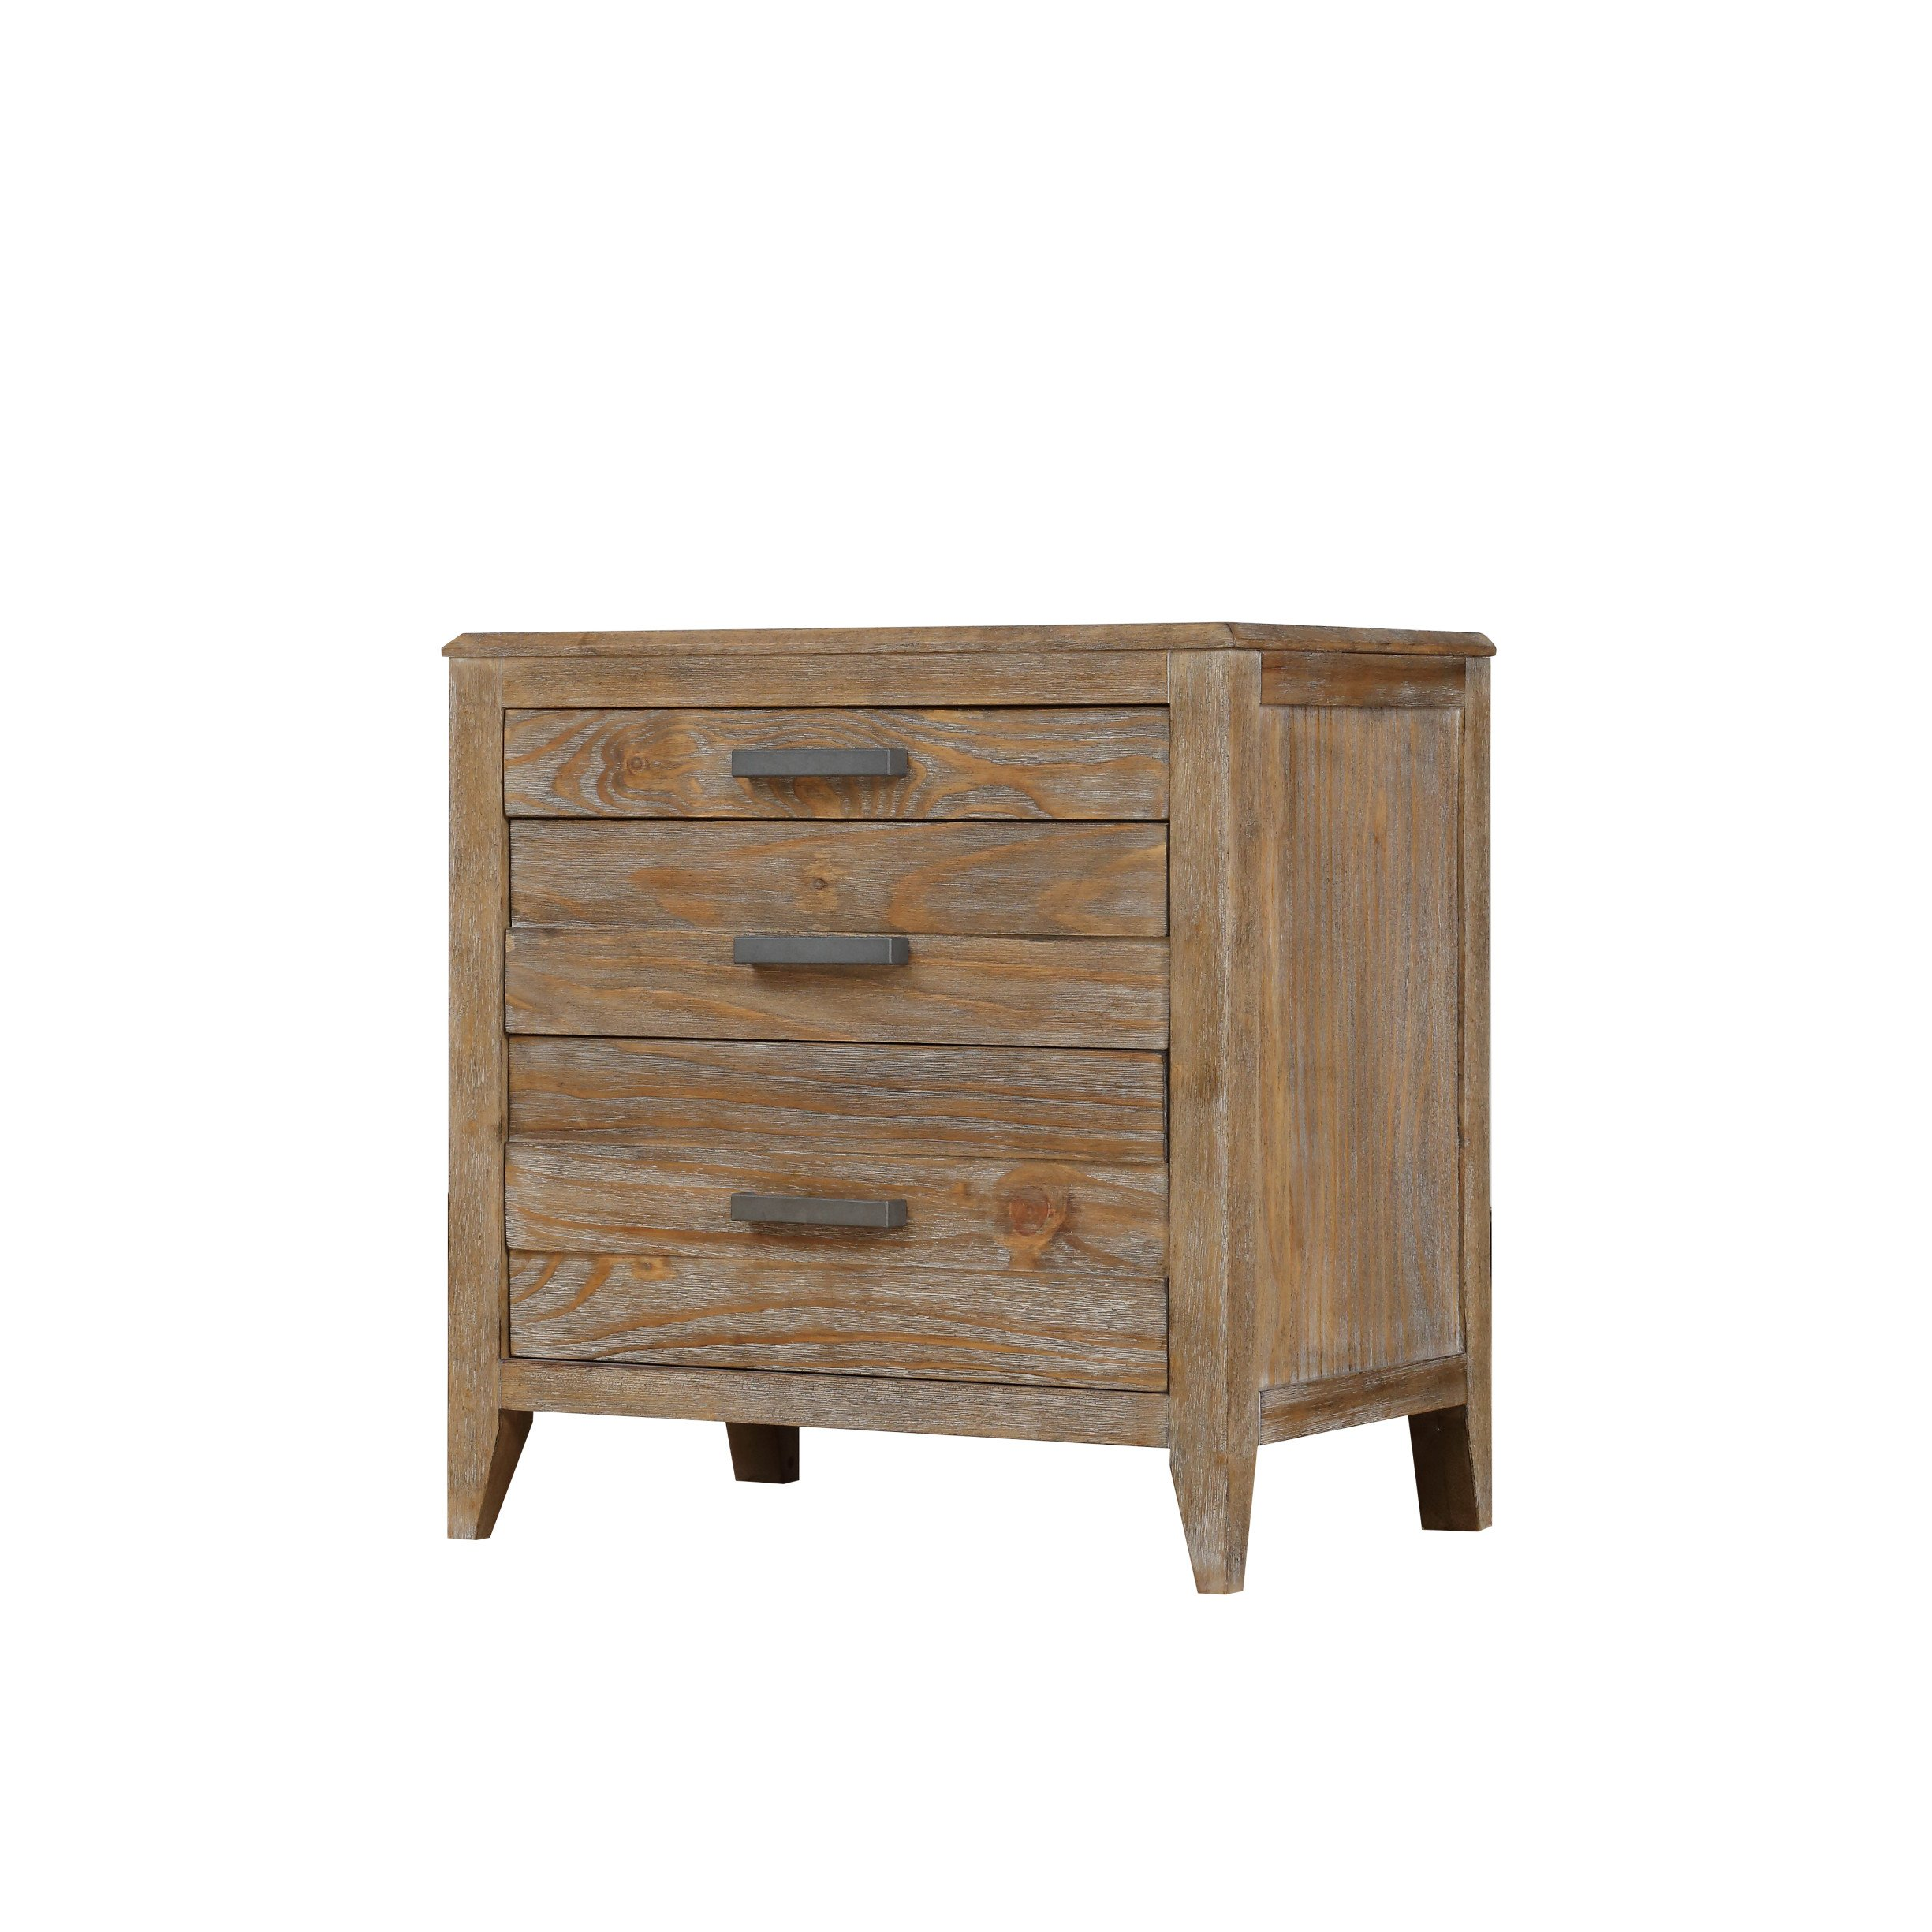 Emerald Home Torino Weathered Brown Nightstand with Three Drawers And Brushed Nickle Hardware